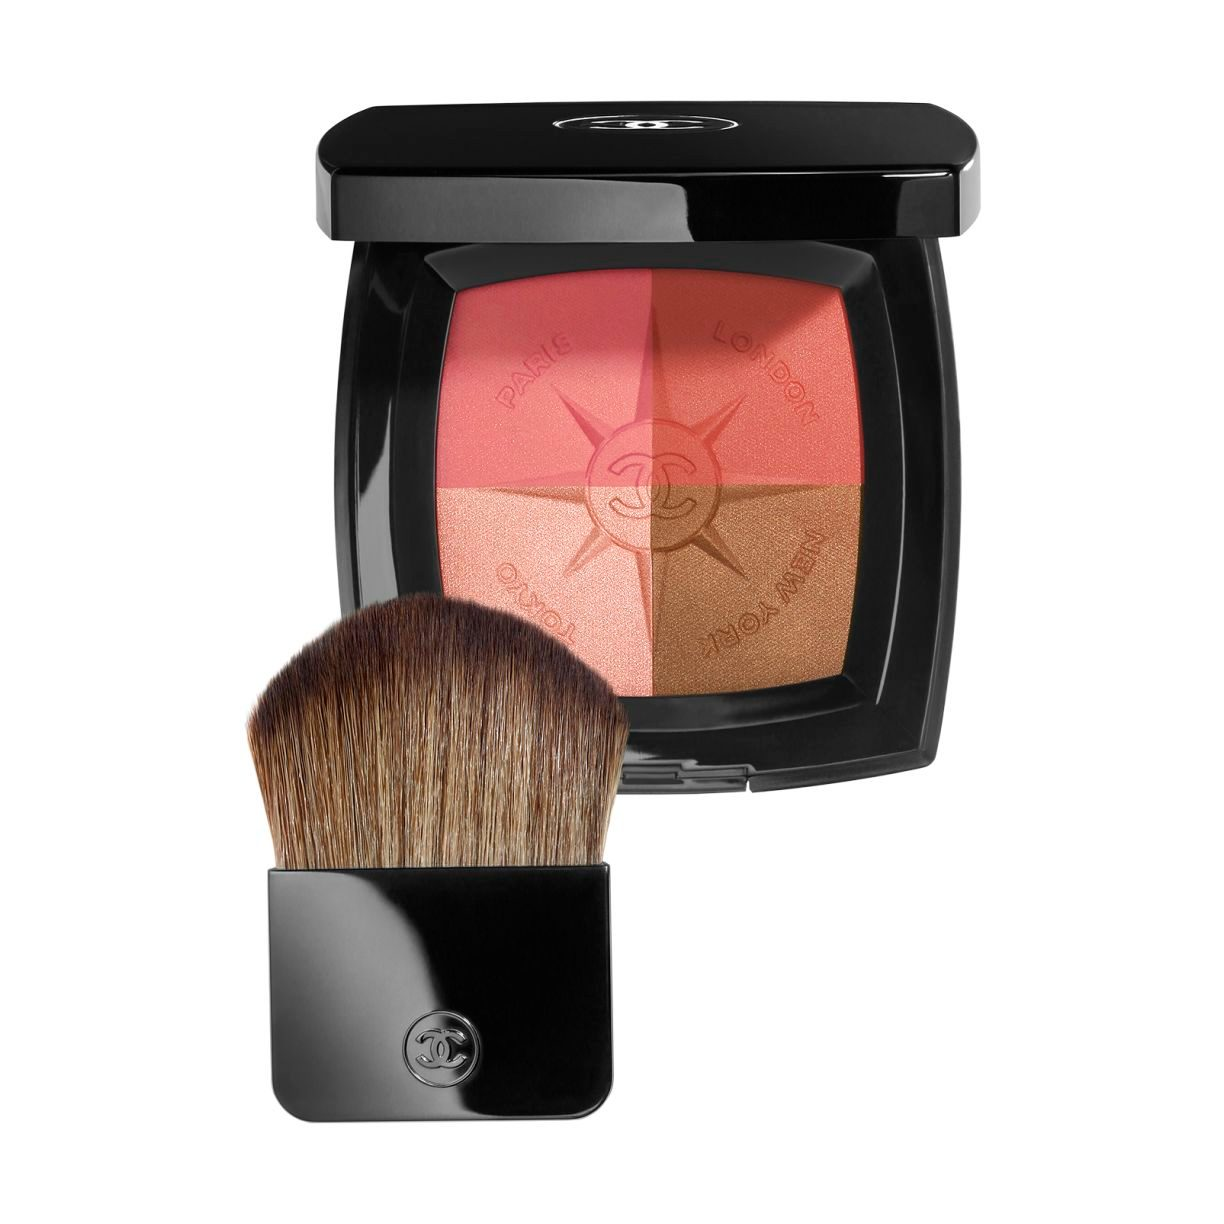 VOYAGE DE CHANEL Exclusive at Duty Free stores TRAVEL FACE PALETTE BLUSH AND ILLUMINATING POWDERS. WITH BRUSH APPLICATOR. LIMITED EDITION. 11g